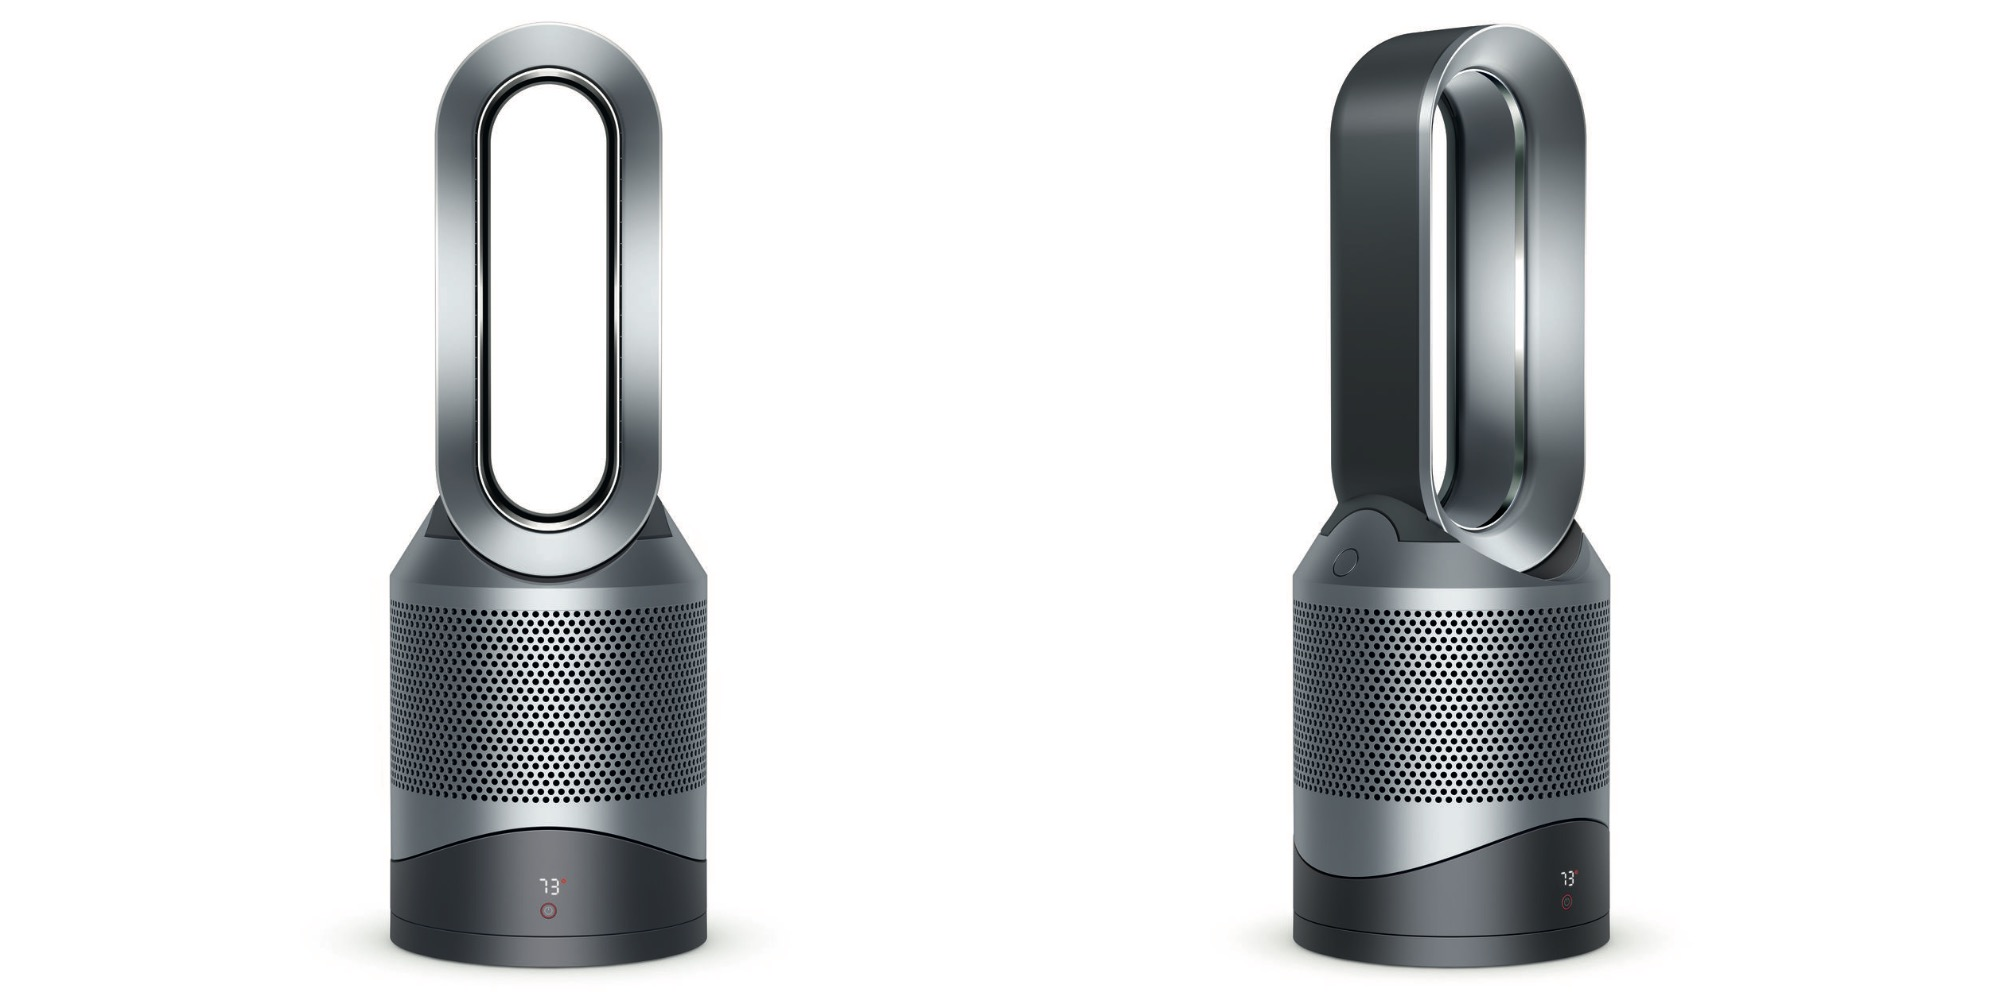 Dyson's Pure Hot + Cool 3-in-1 cleans the air, heats, and is your biggest fan: $170 (Refurb, Orig. $600)